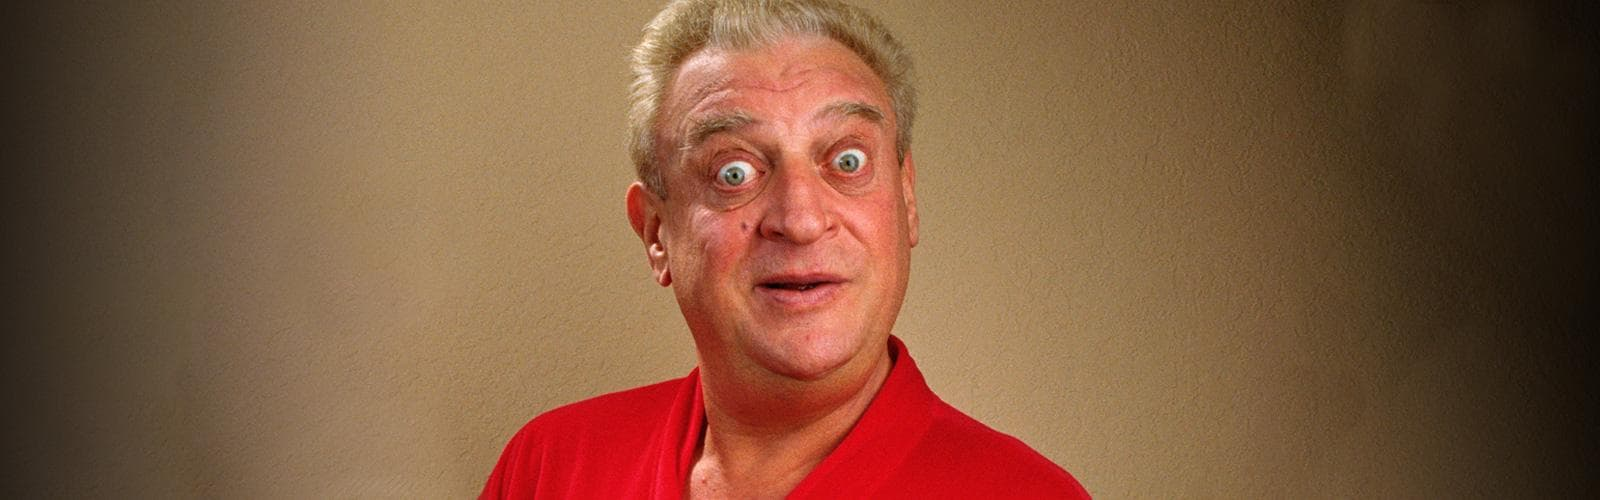 Rodney Dangerfield Background